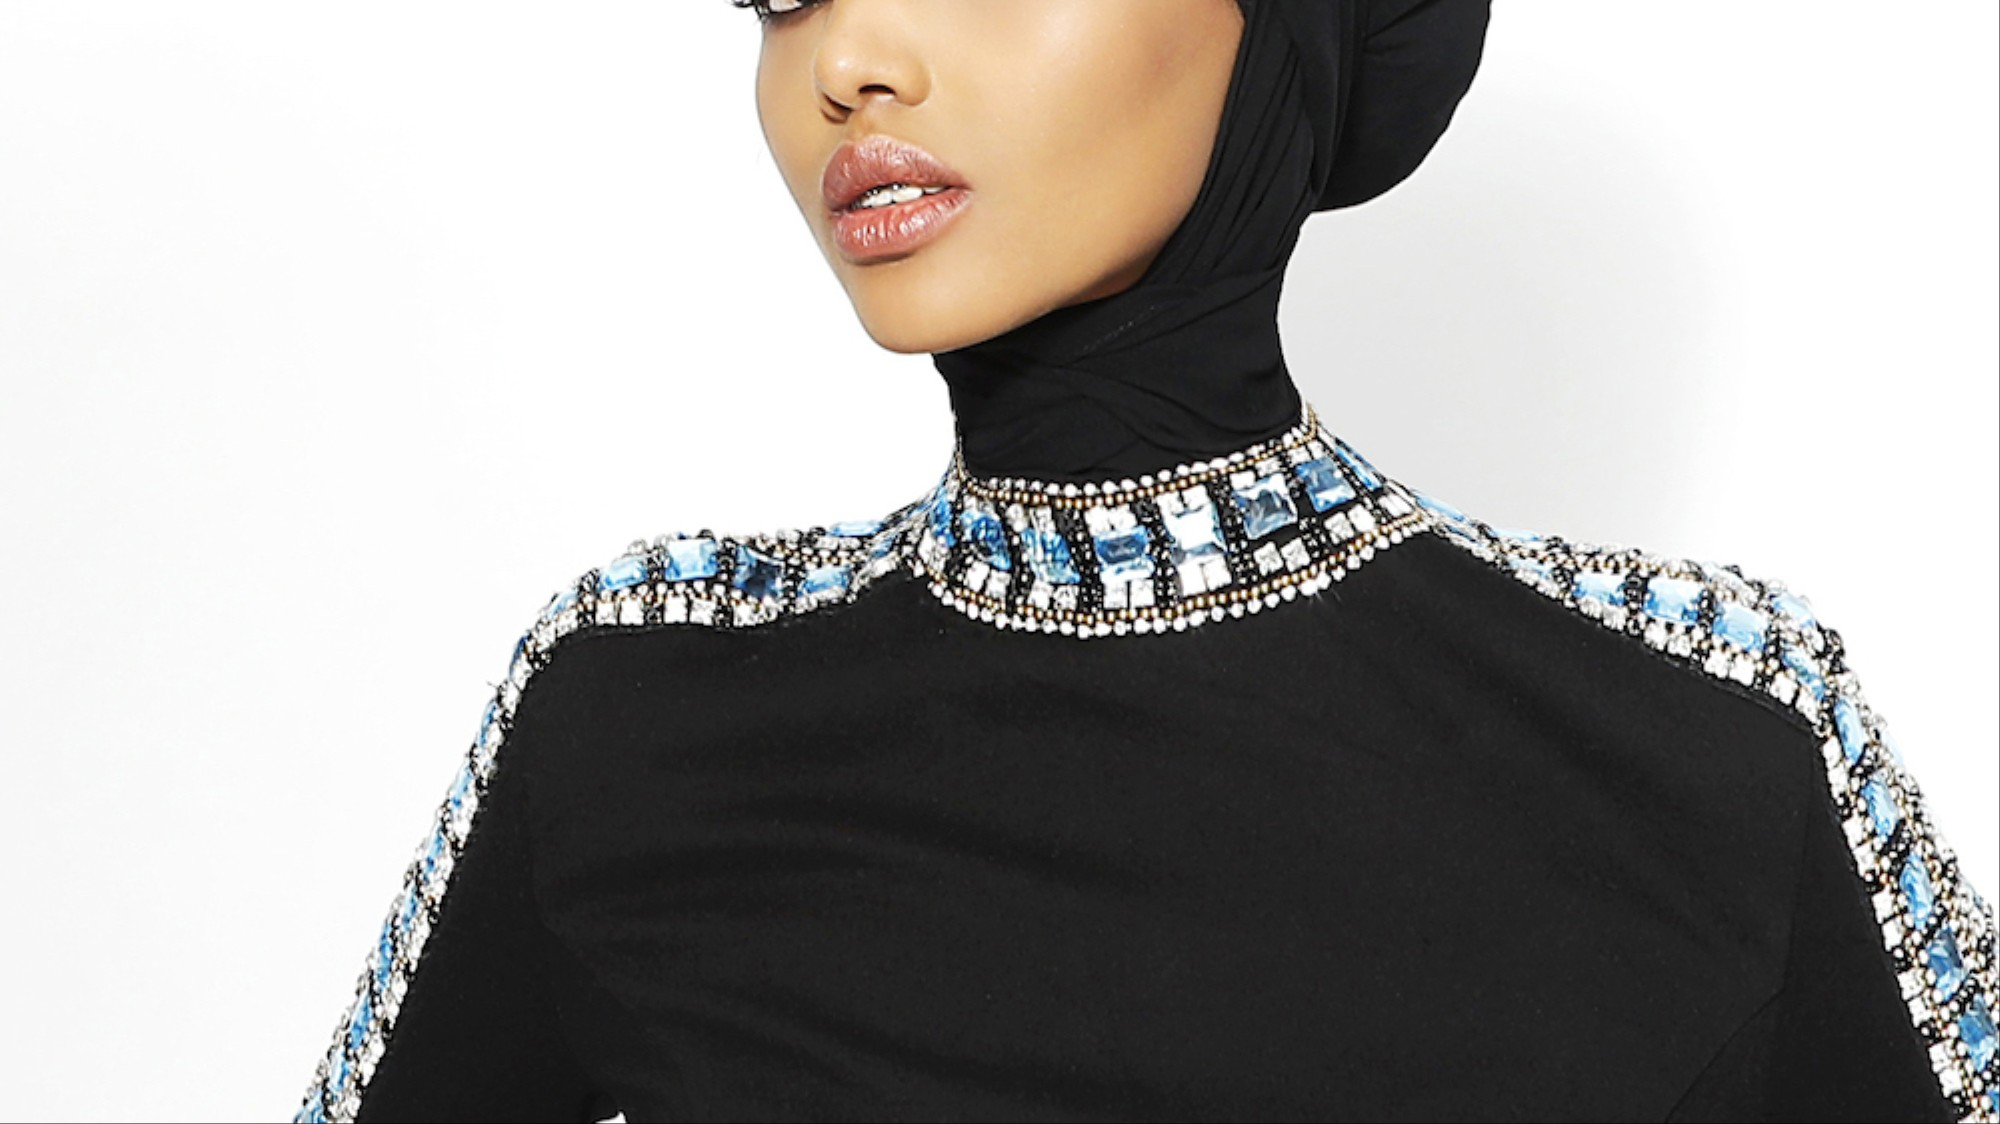 Hijabi Model Halima Aden On Her Hopes For Fashion And The